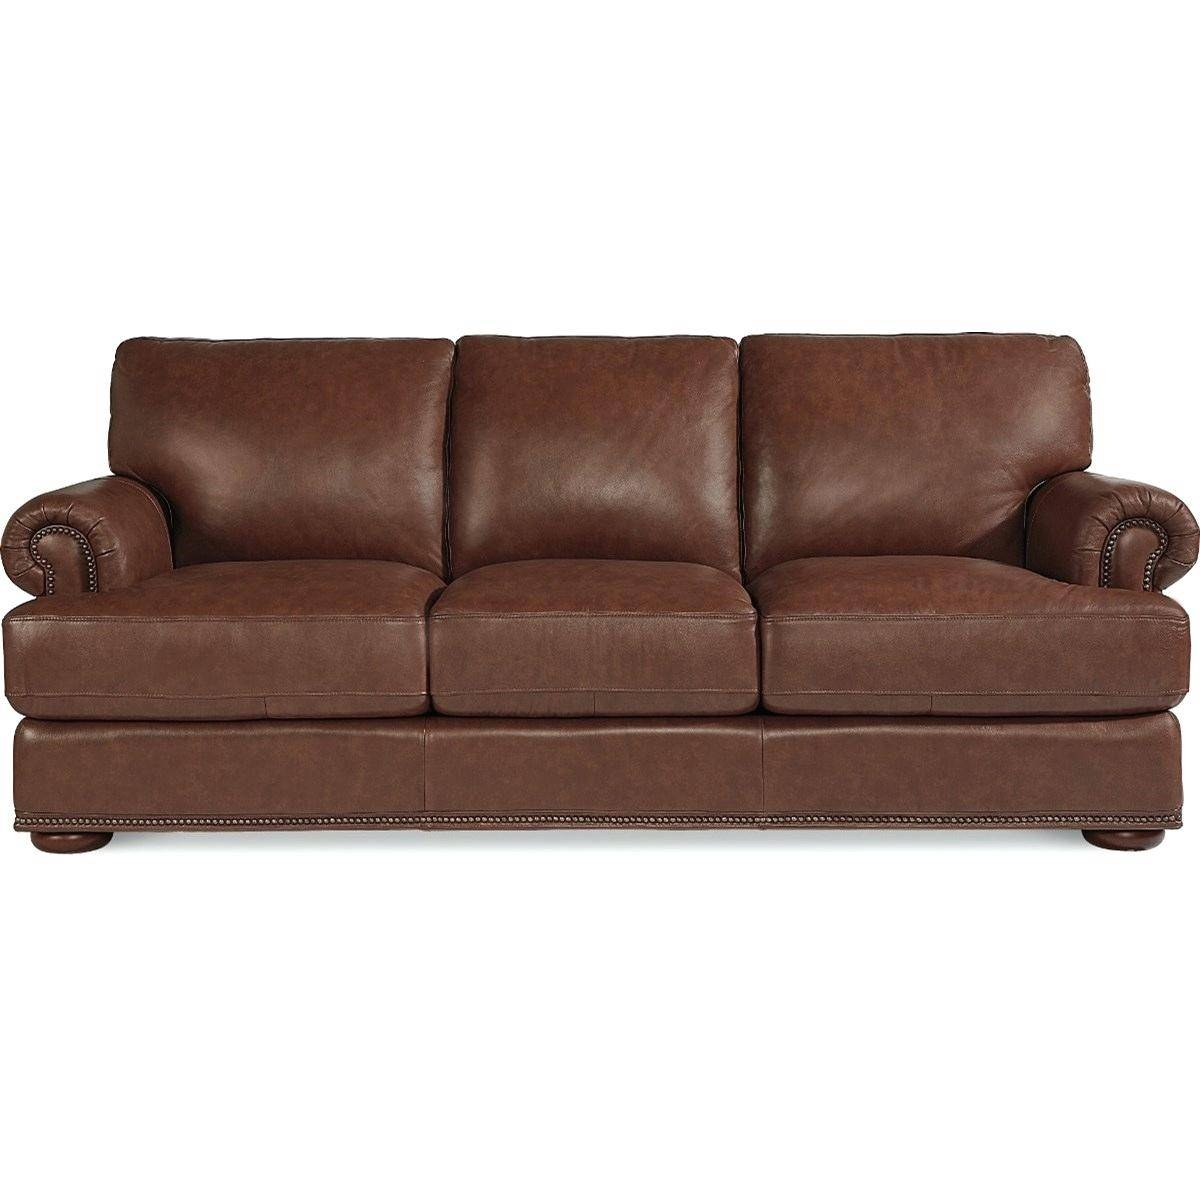 100+ [ Berkline Leather Sectional Sofas ] | Latest Leather Sofa for Berkline Leather Sofas (Image 1 of 15)